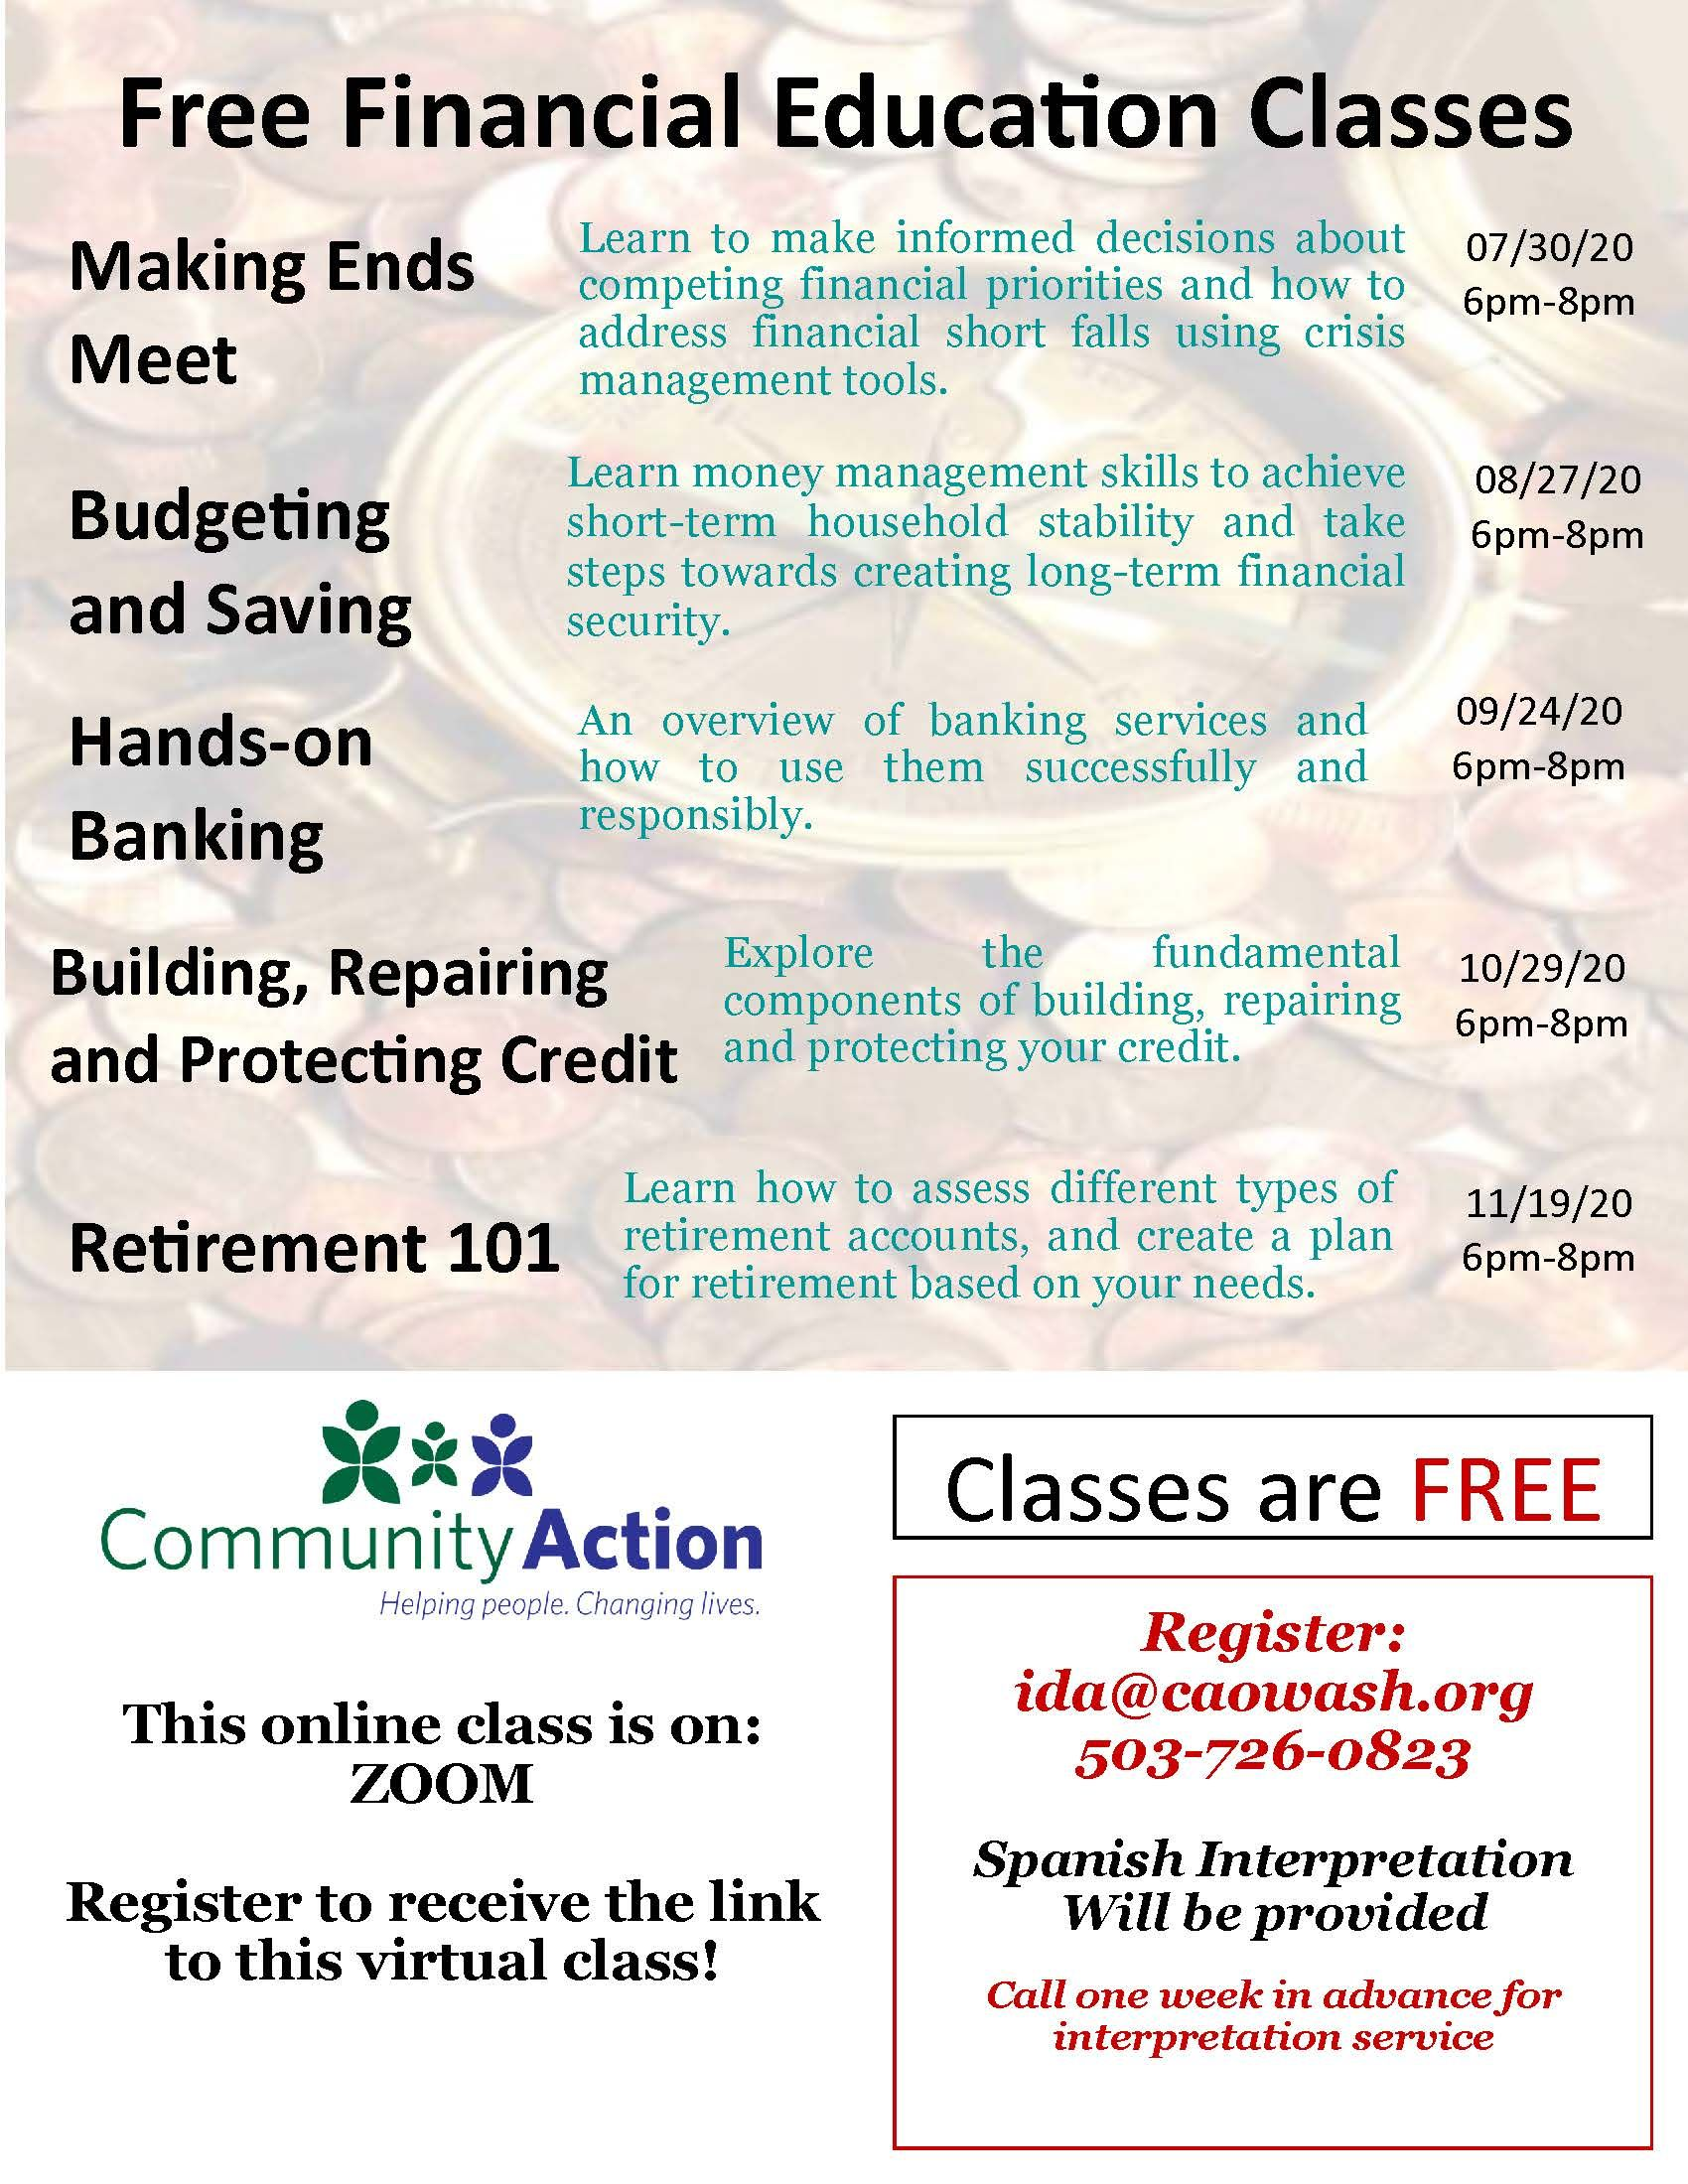 Financial Education Class: Building, Repairing, and Protecting Credit